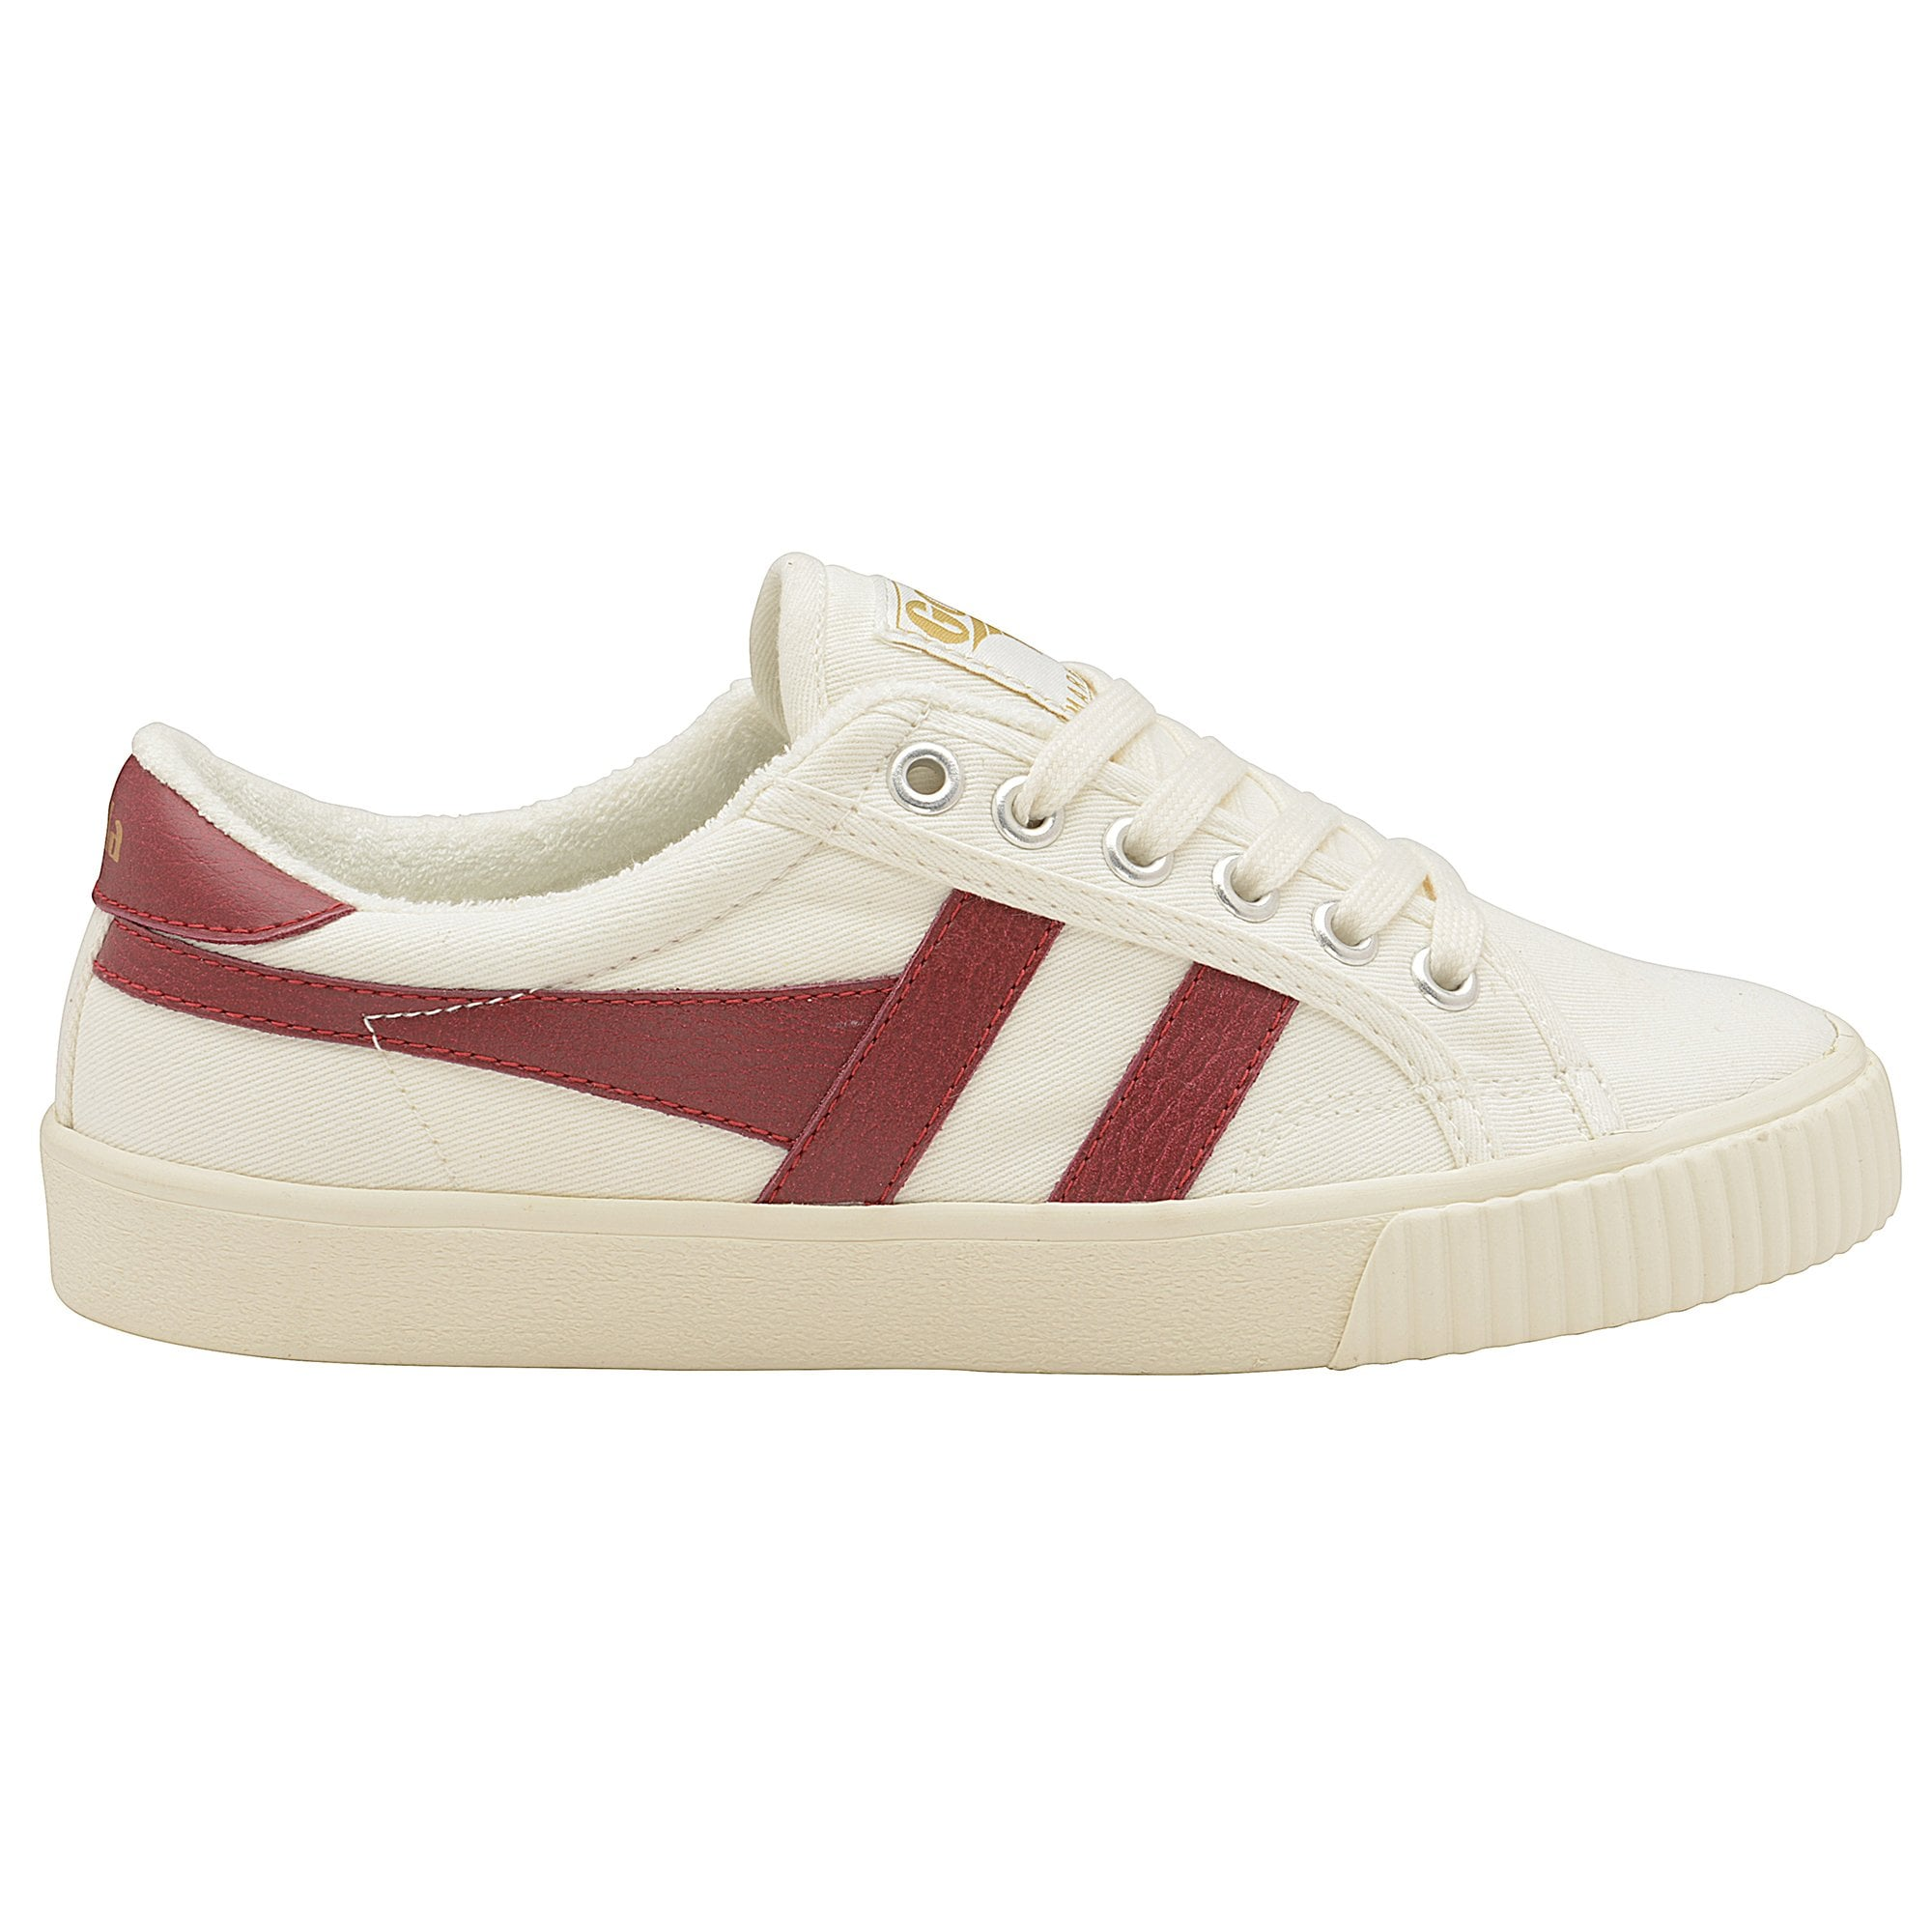 Men's Tennis Mark Cox Sneakers